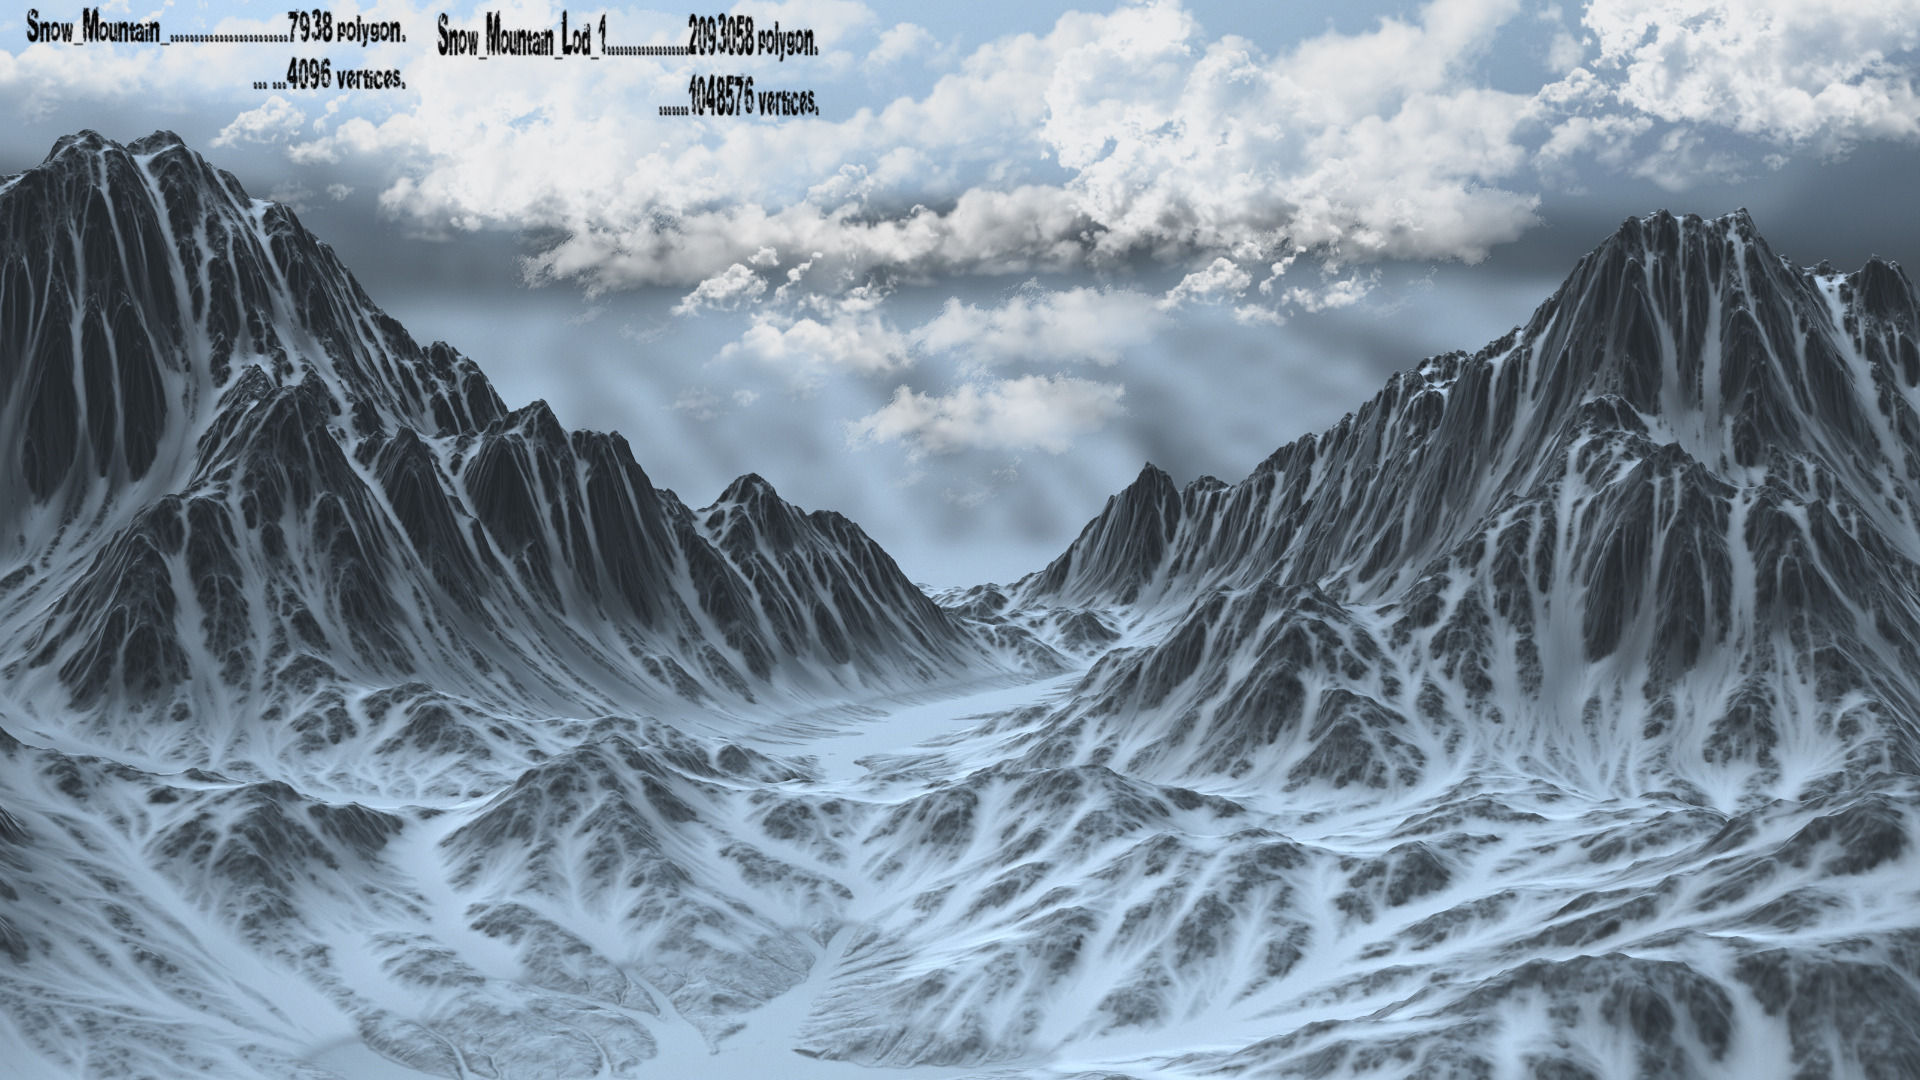 snow mountain 3d model | cgtrader